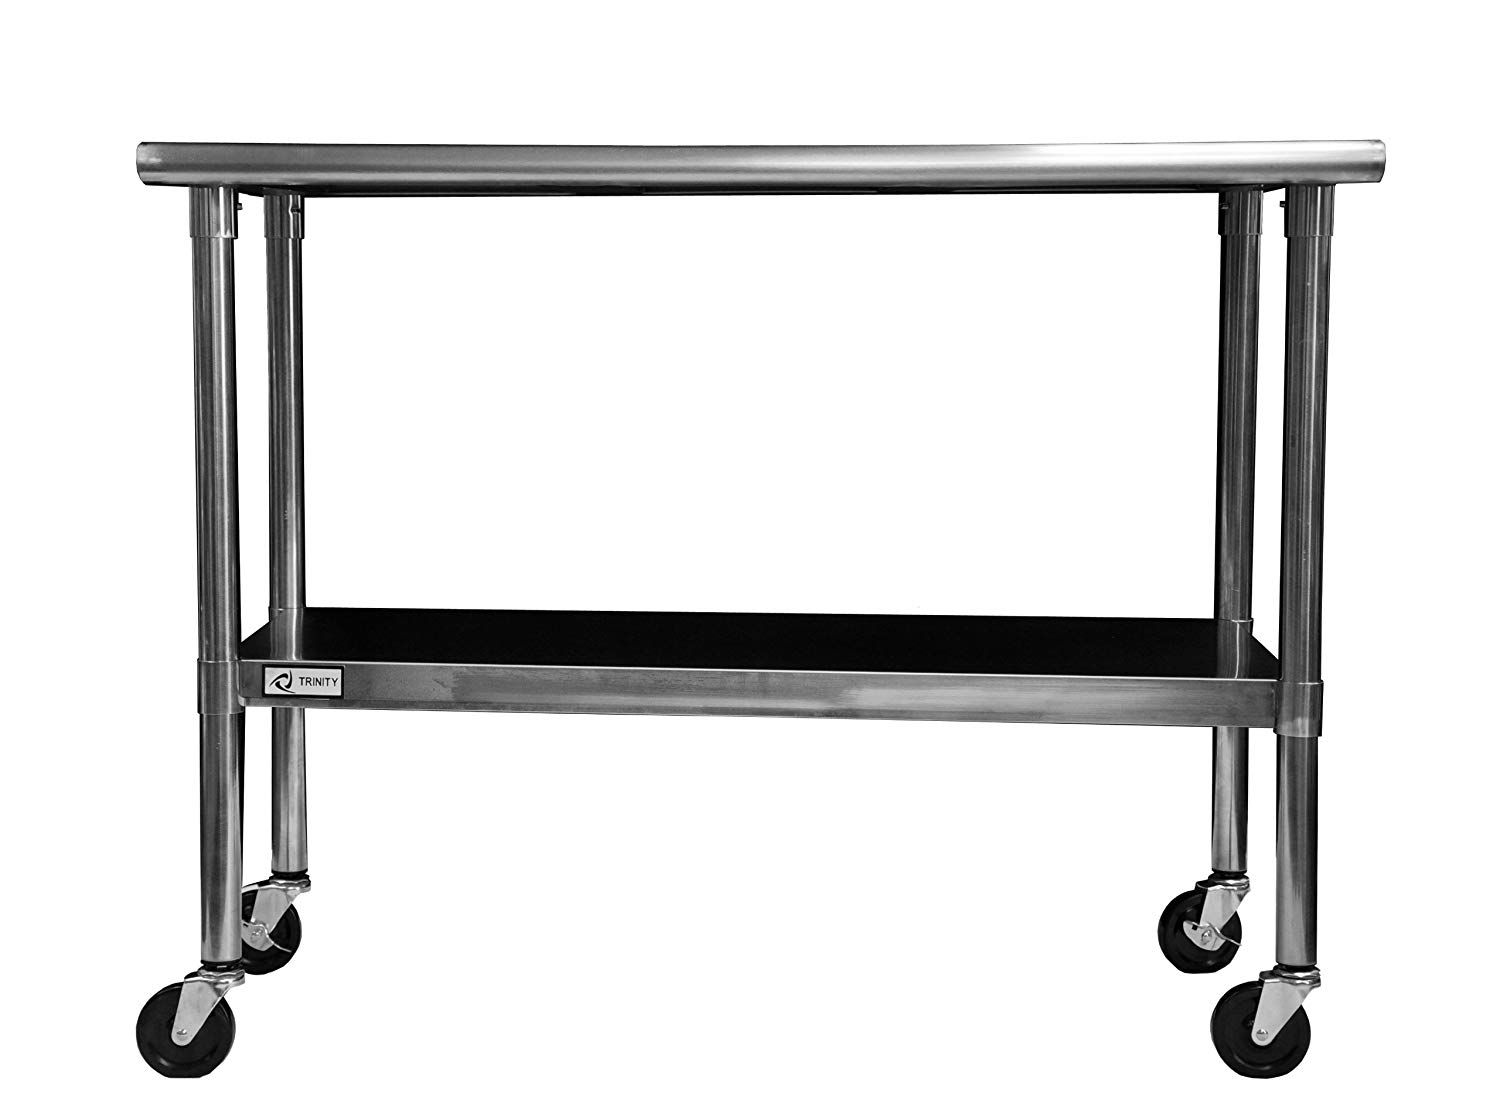 82 Reference Of Stainless Steel Kitchen Bench On Wheels In 2020 Steel Table Stainless Steel Prep Table Stainless Steel Table